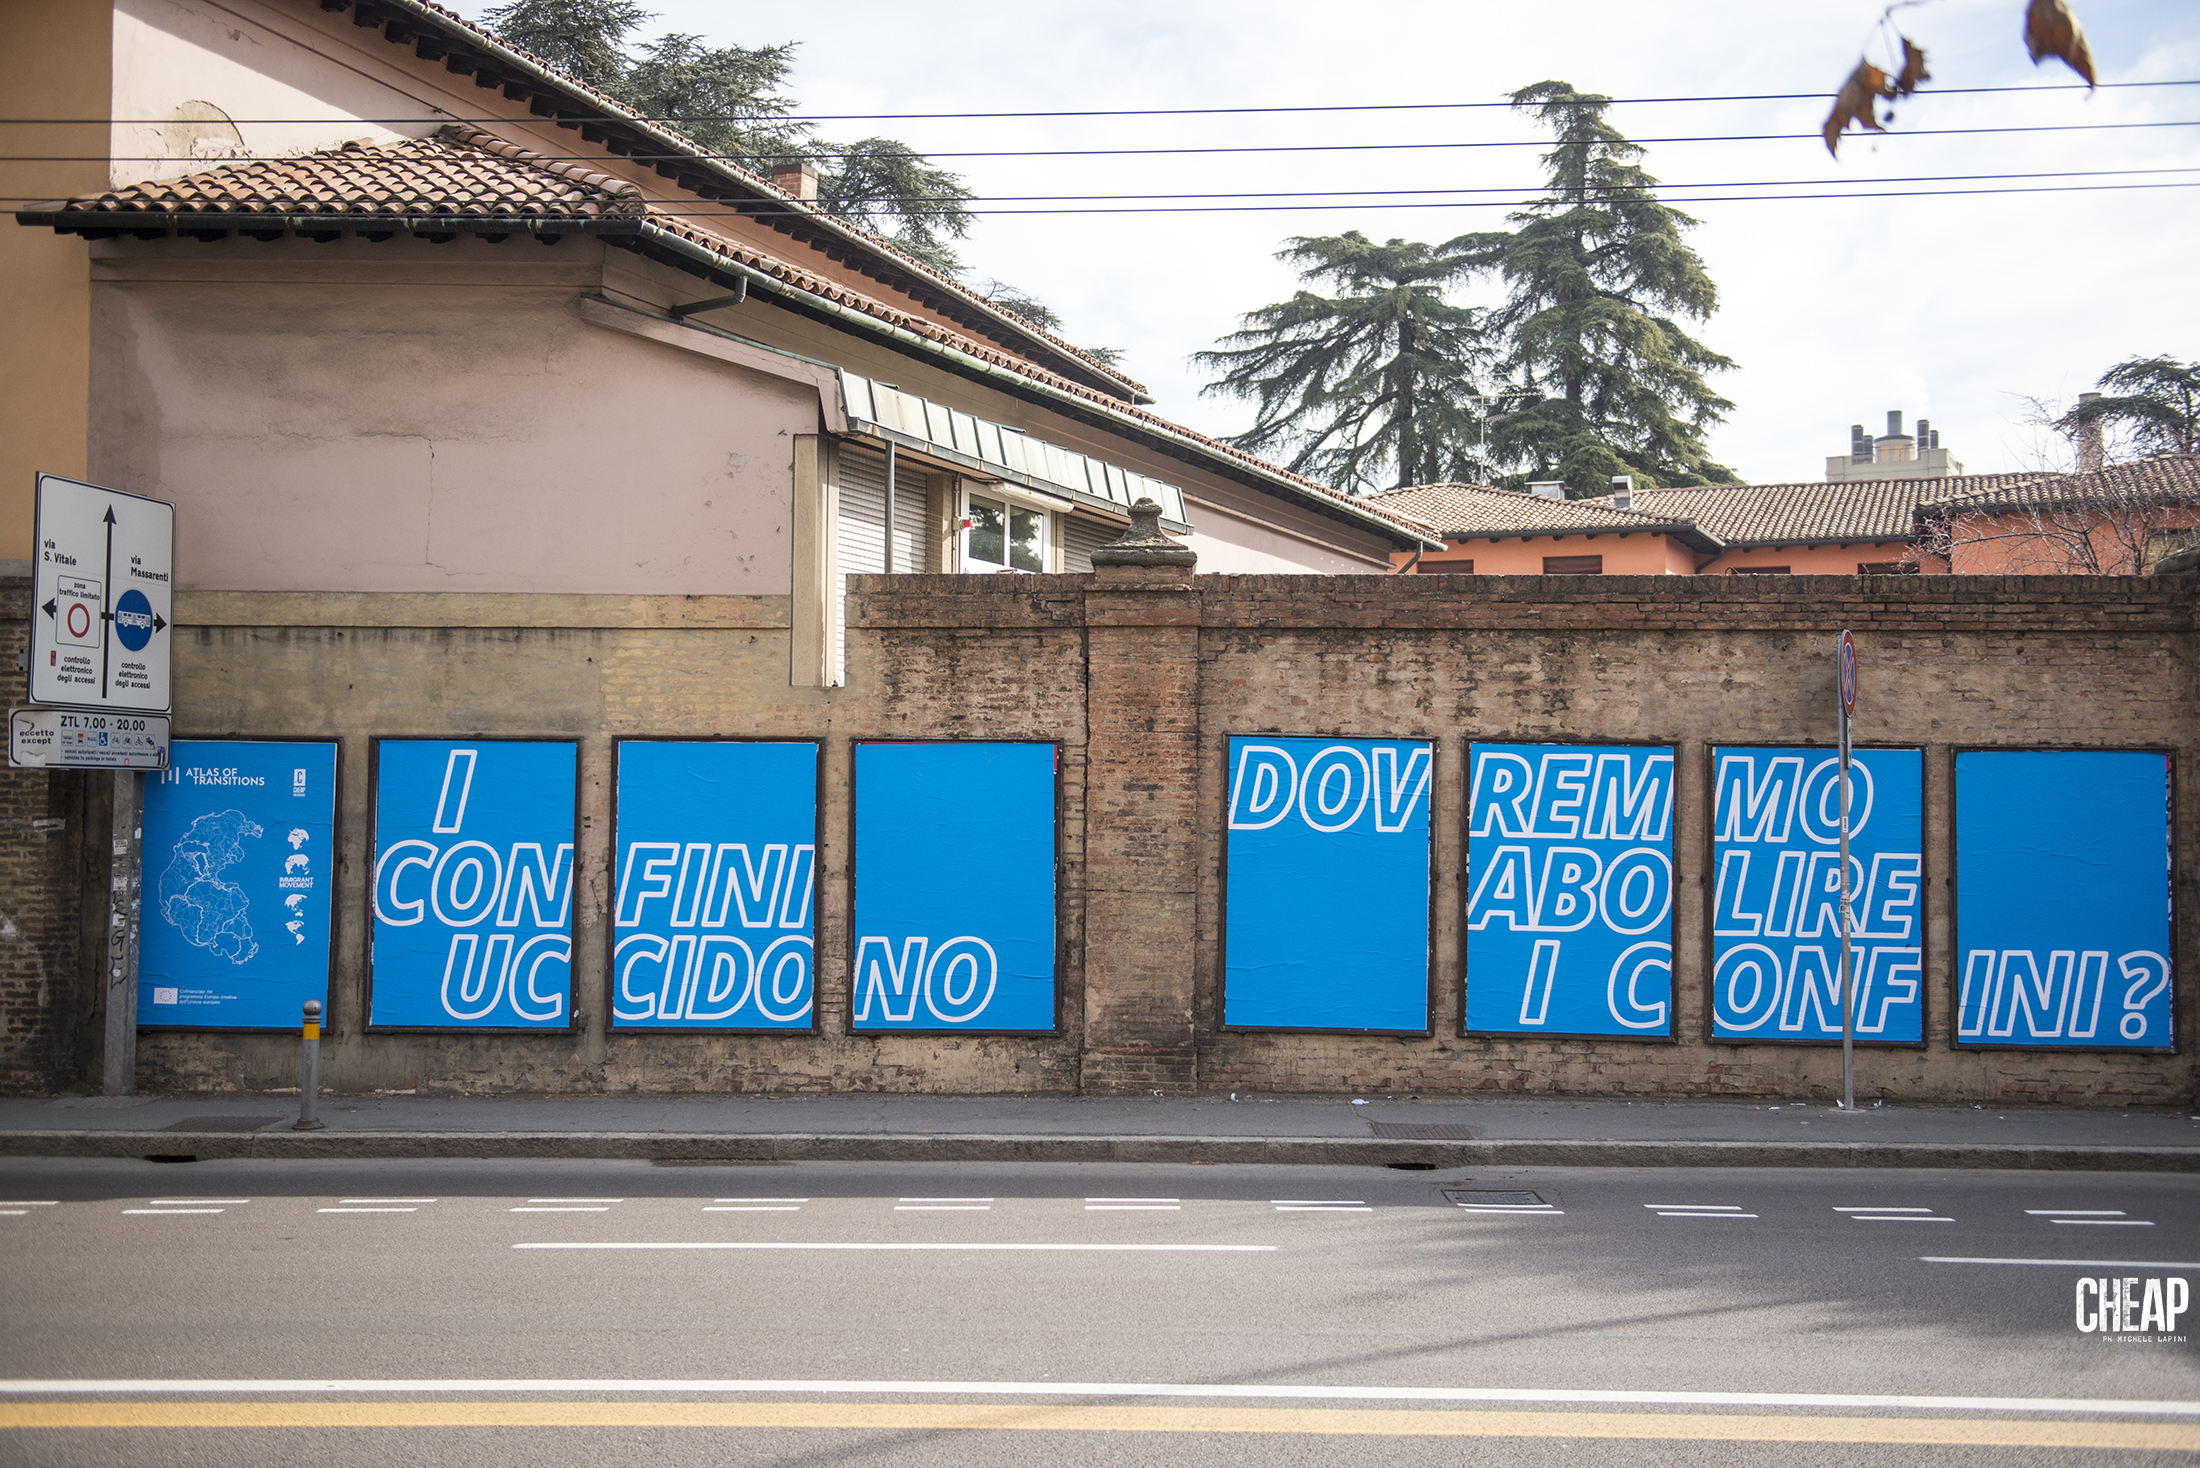 CHEAP X Tania Bruguera | Referendum | Atlas of Transitions HOME | Viale Ercolani, Bologna